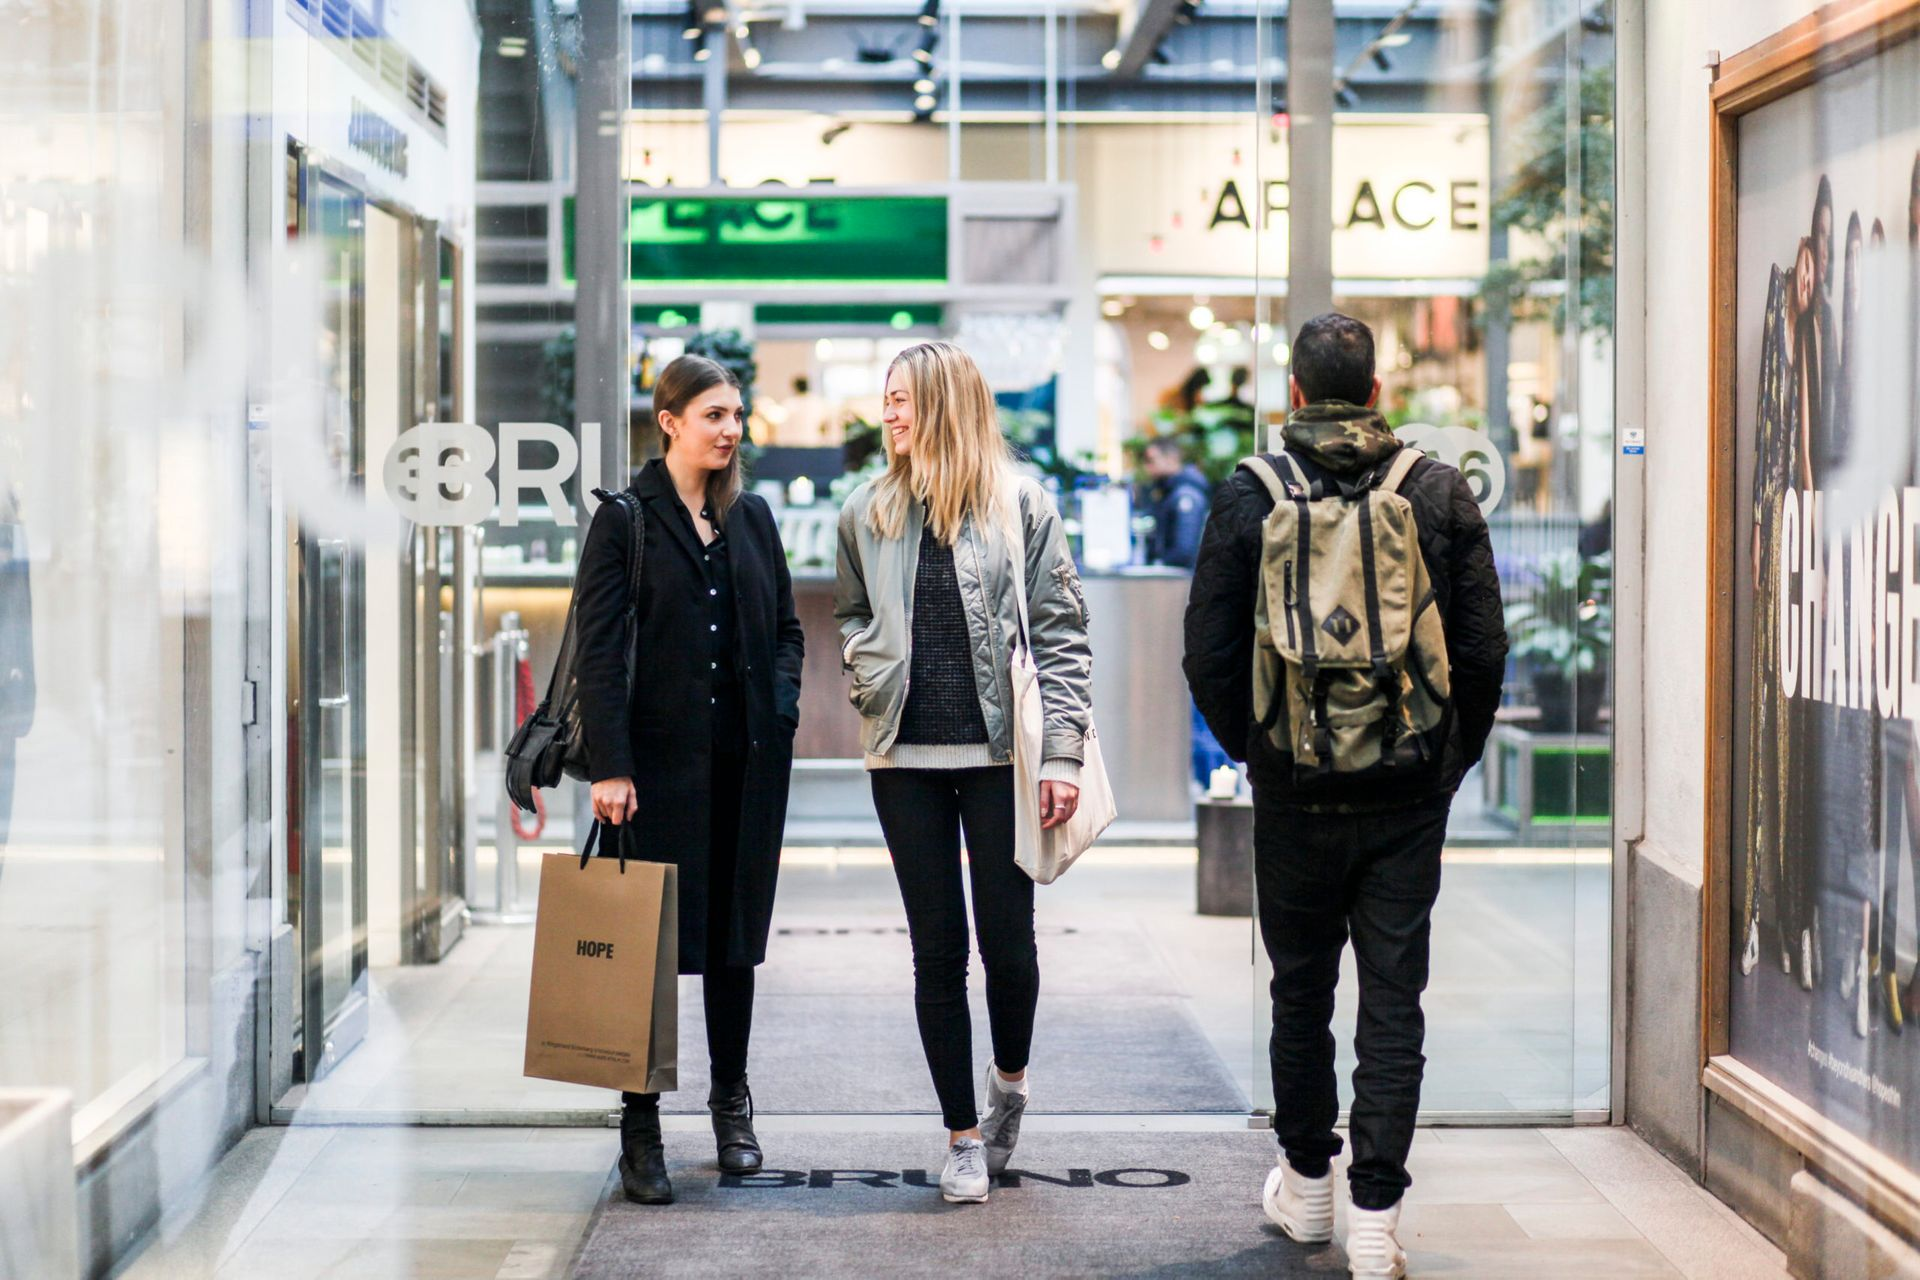 Walking and shopping in stockholm mall